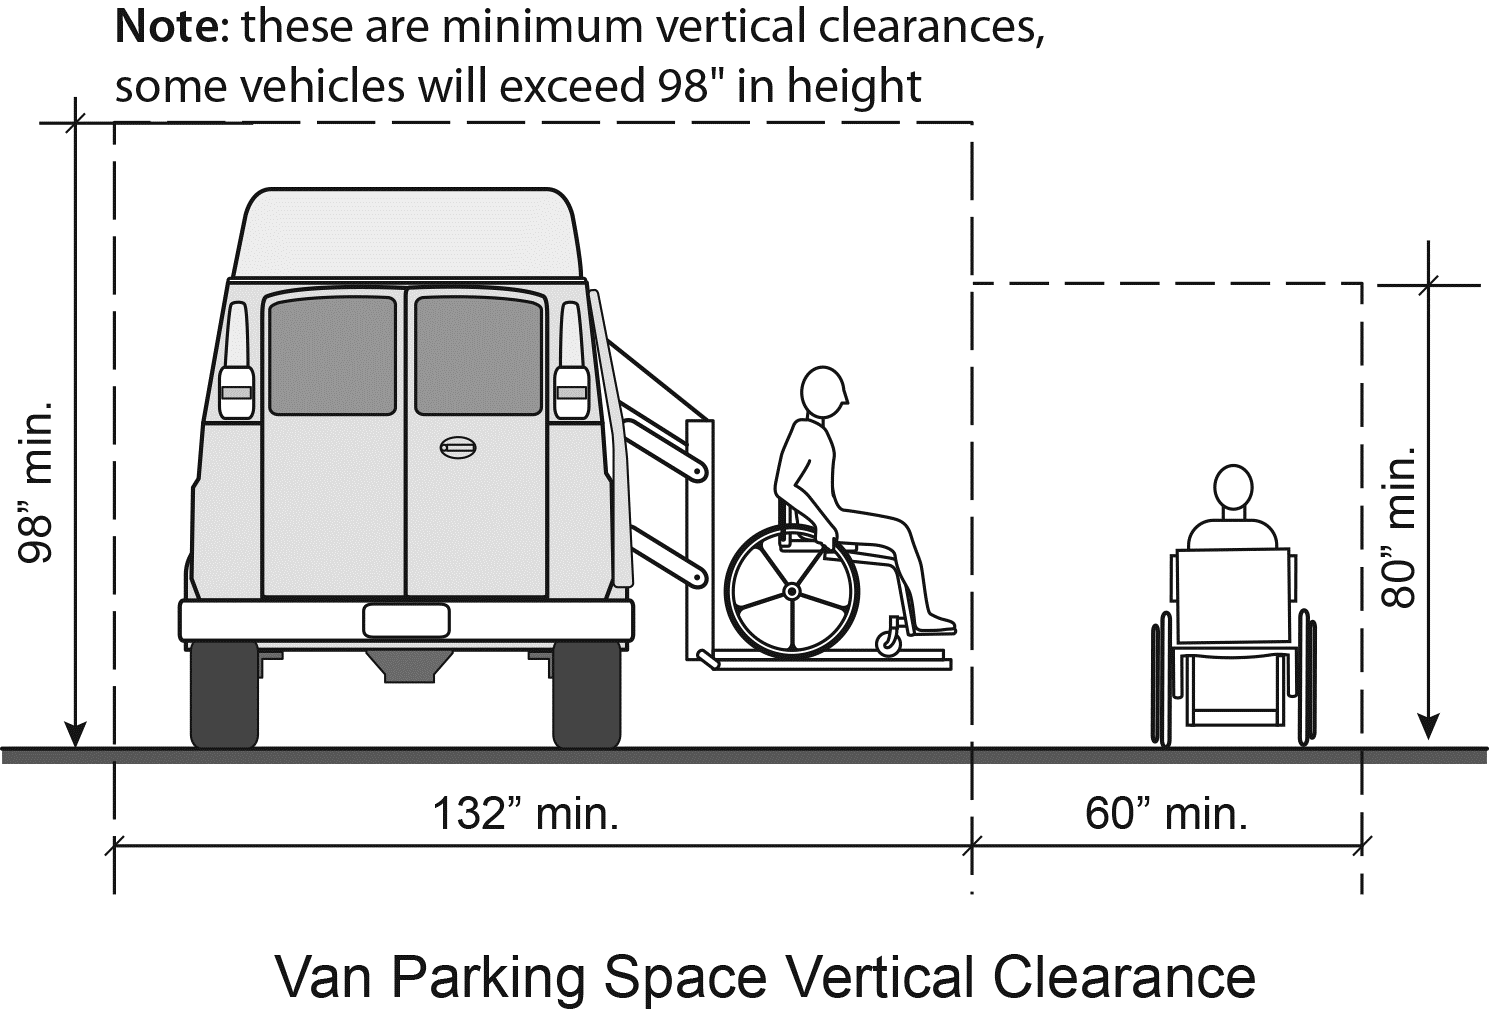 Figure 6: Minimum width required for van parking spaces in parking garages is 132 inches to allow space for van lifts and ramps.